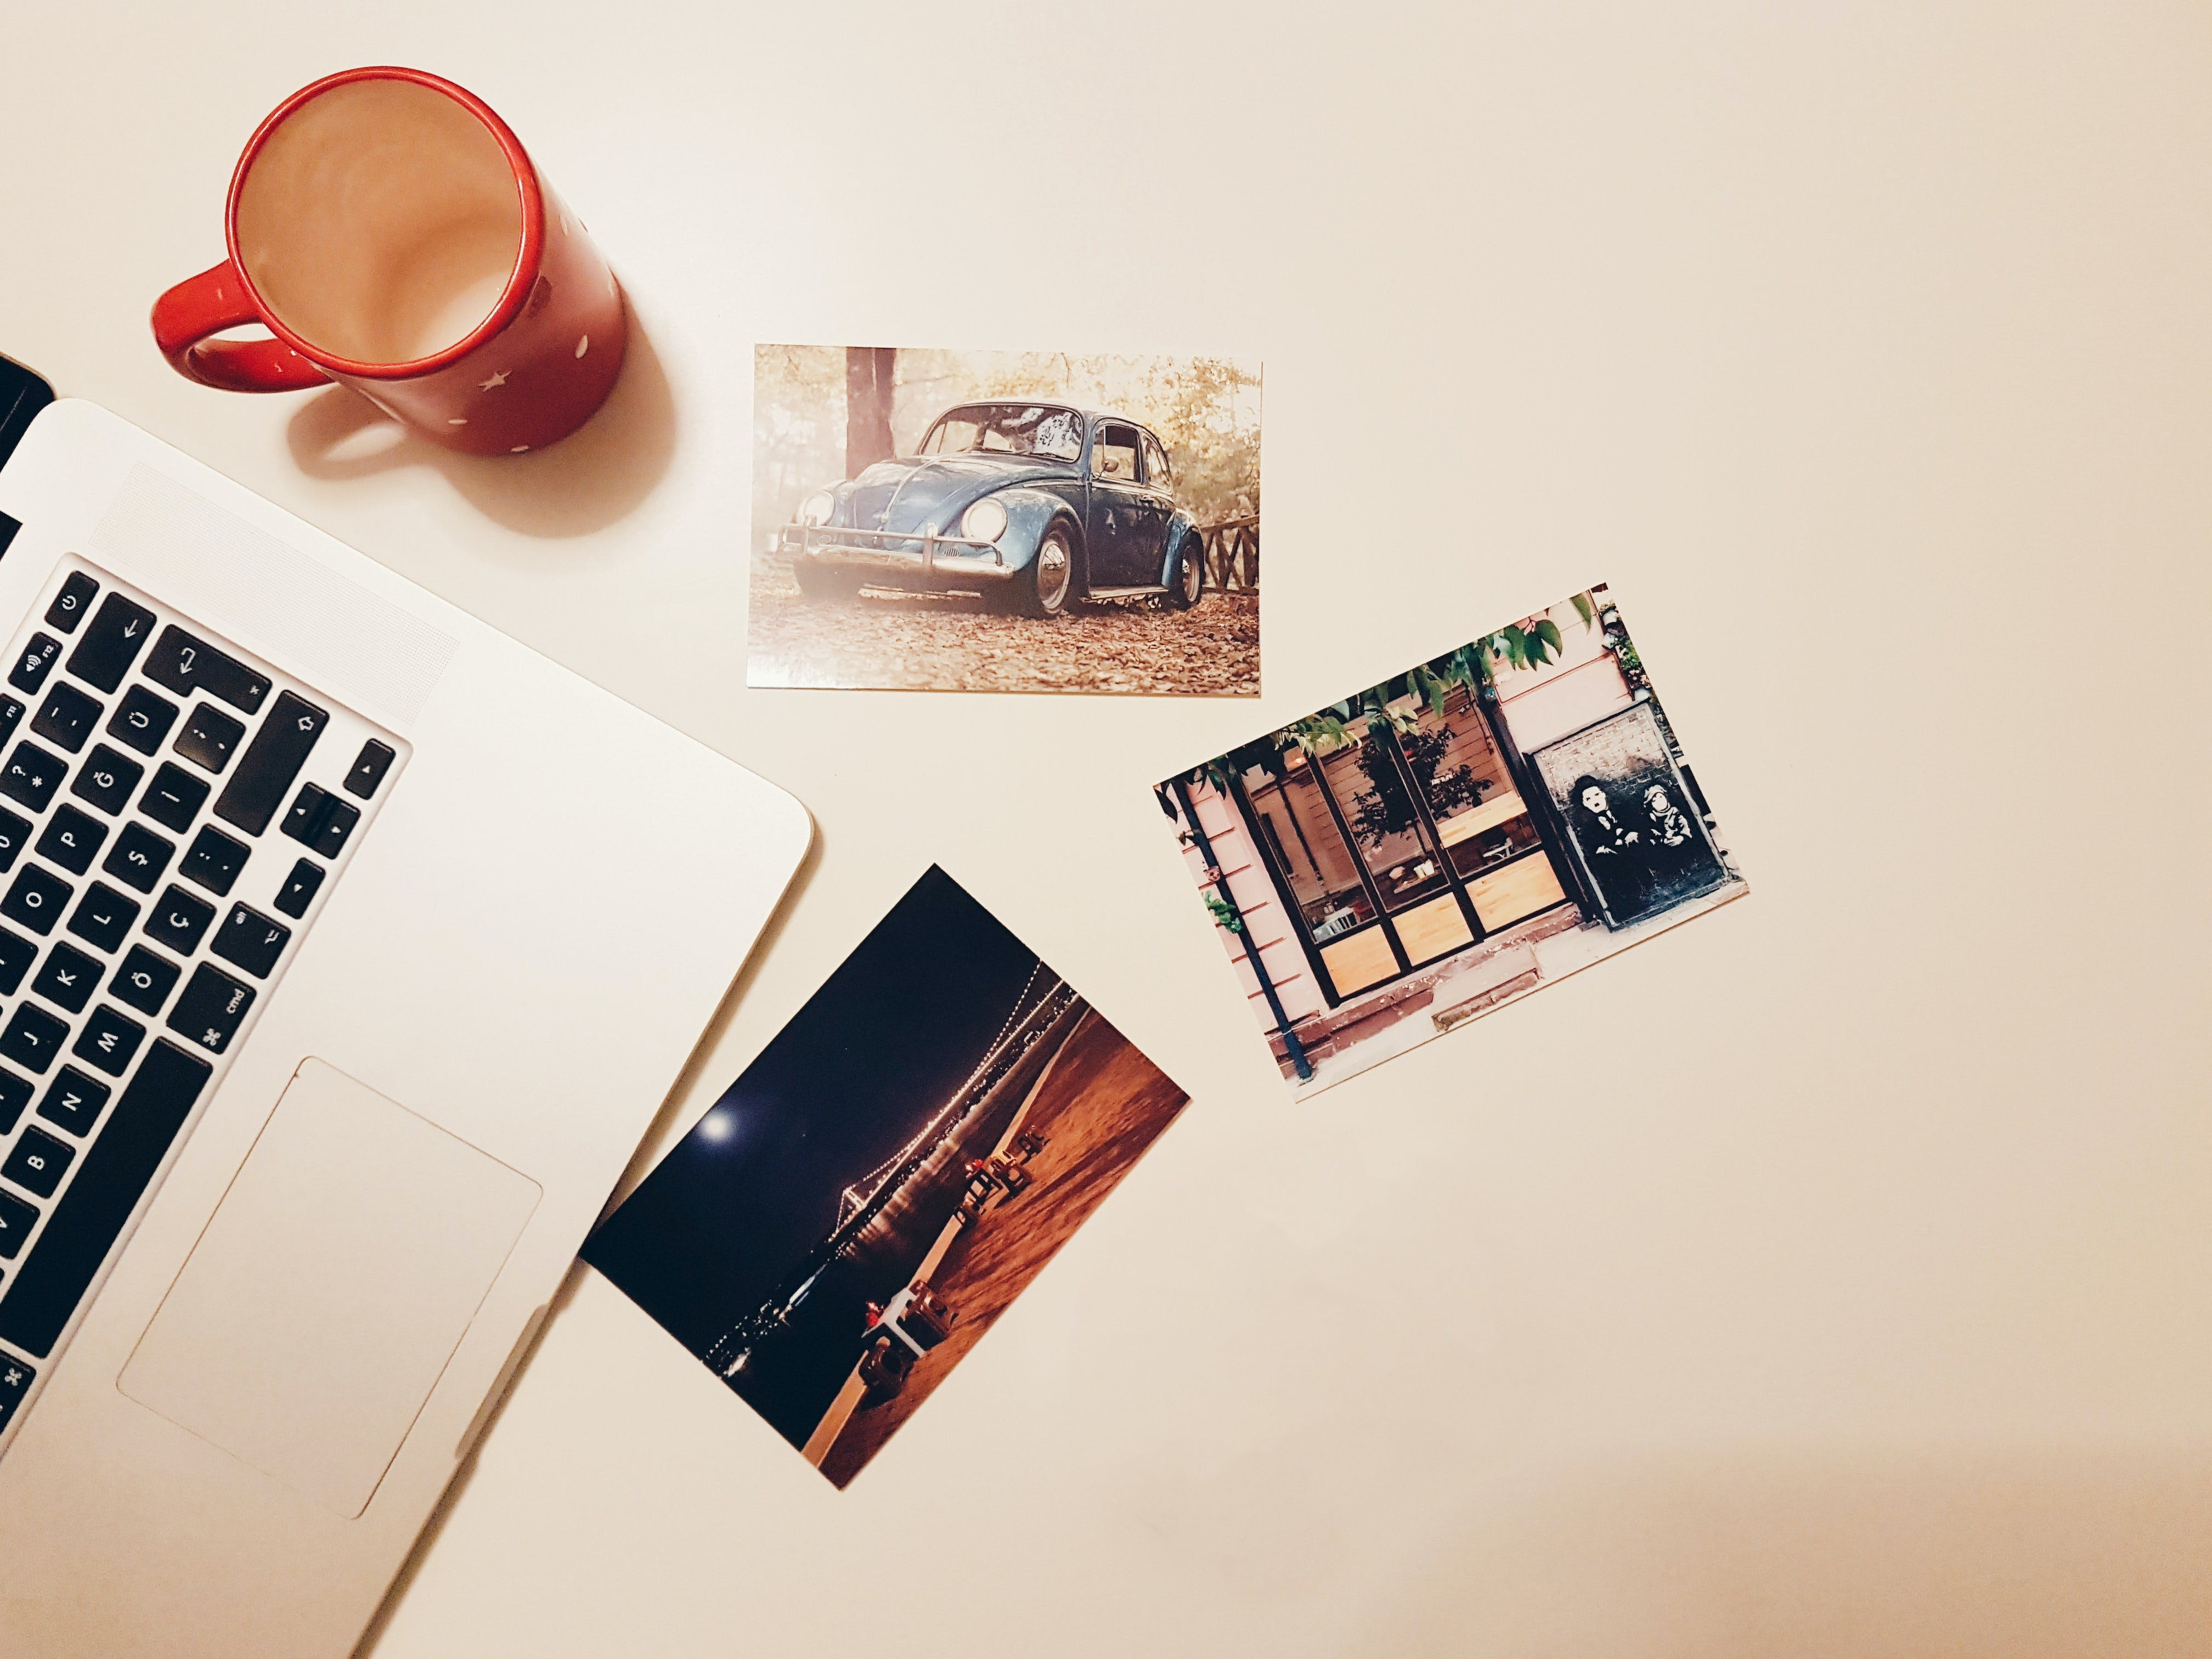 Three Assorted Photos on Desk Beside Laptop and Mug